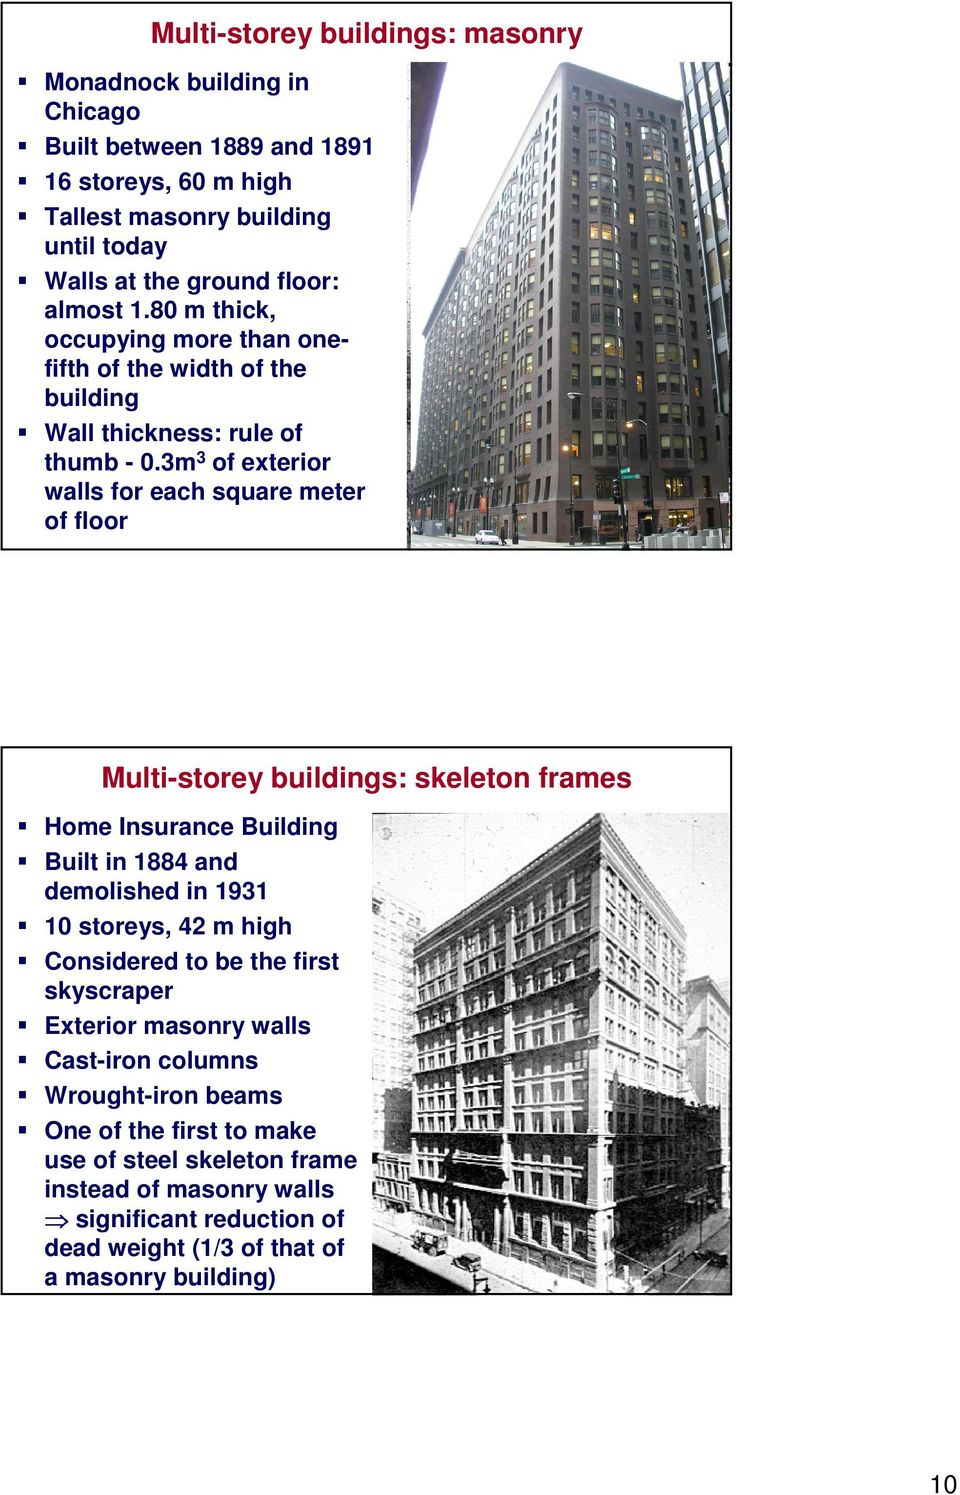 3m 3 of exterior walls for each square meter of floor Multi-storey buildings: skeleton frames Home Insurance Building Built in 1884 and demolished in 1931 10 storeys, 42 m high